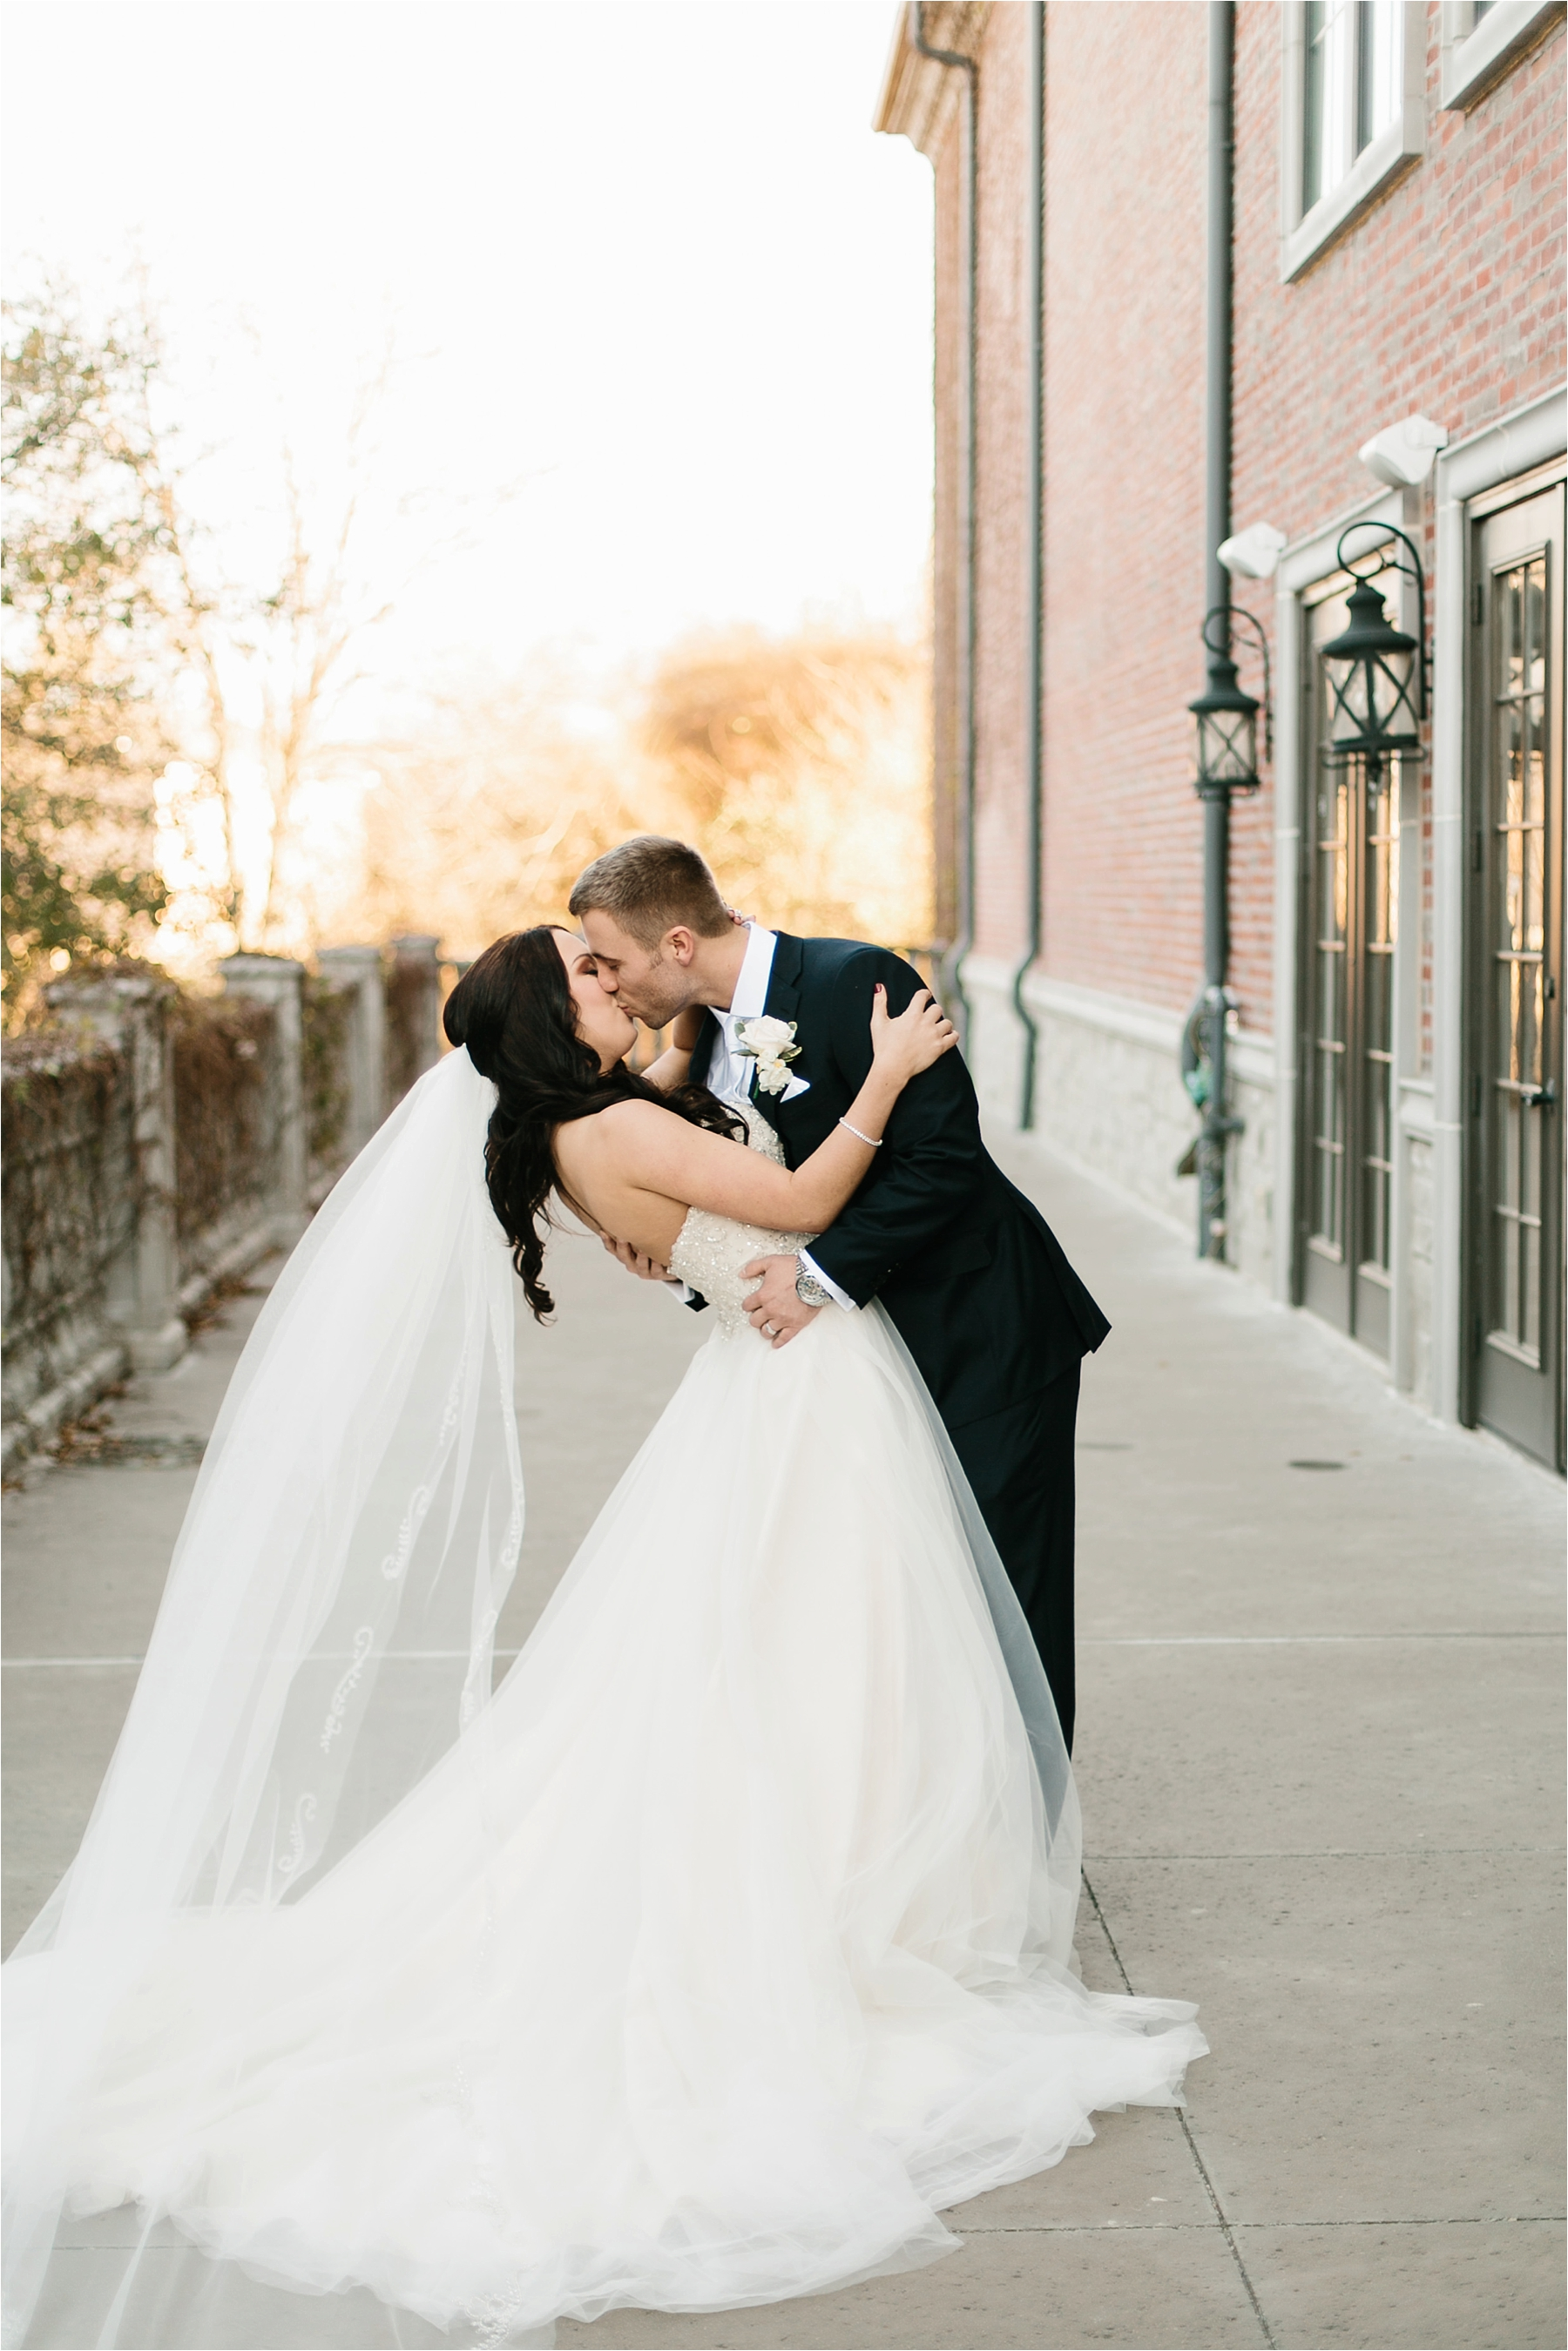 Chrissy + Zach __ The Windsor at Hebron Park Wedding by North Texas Wedding Photographer _ Rachel Meagan Photography __057